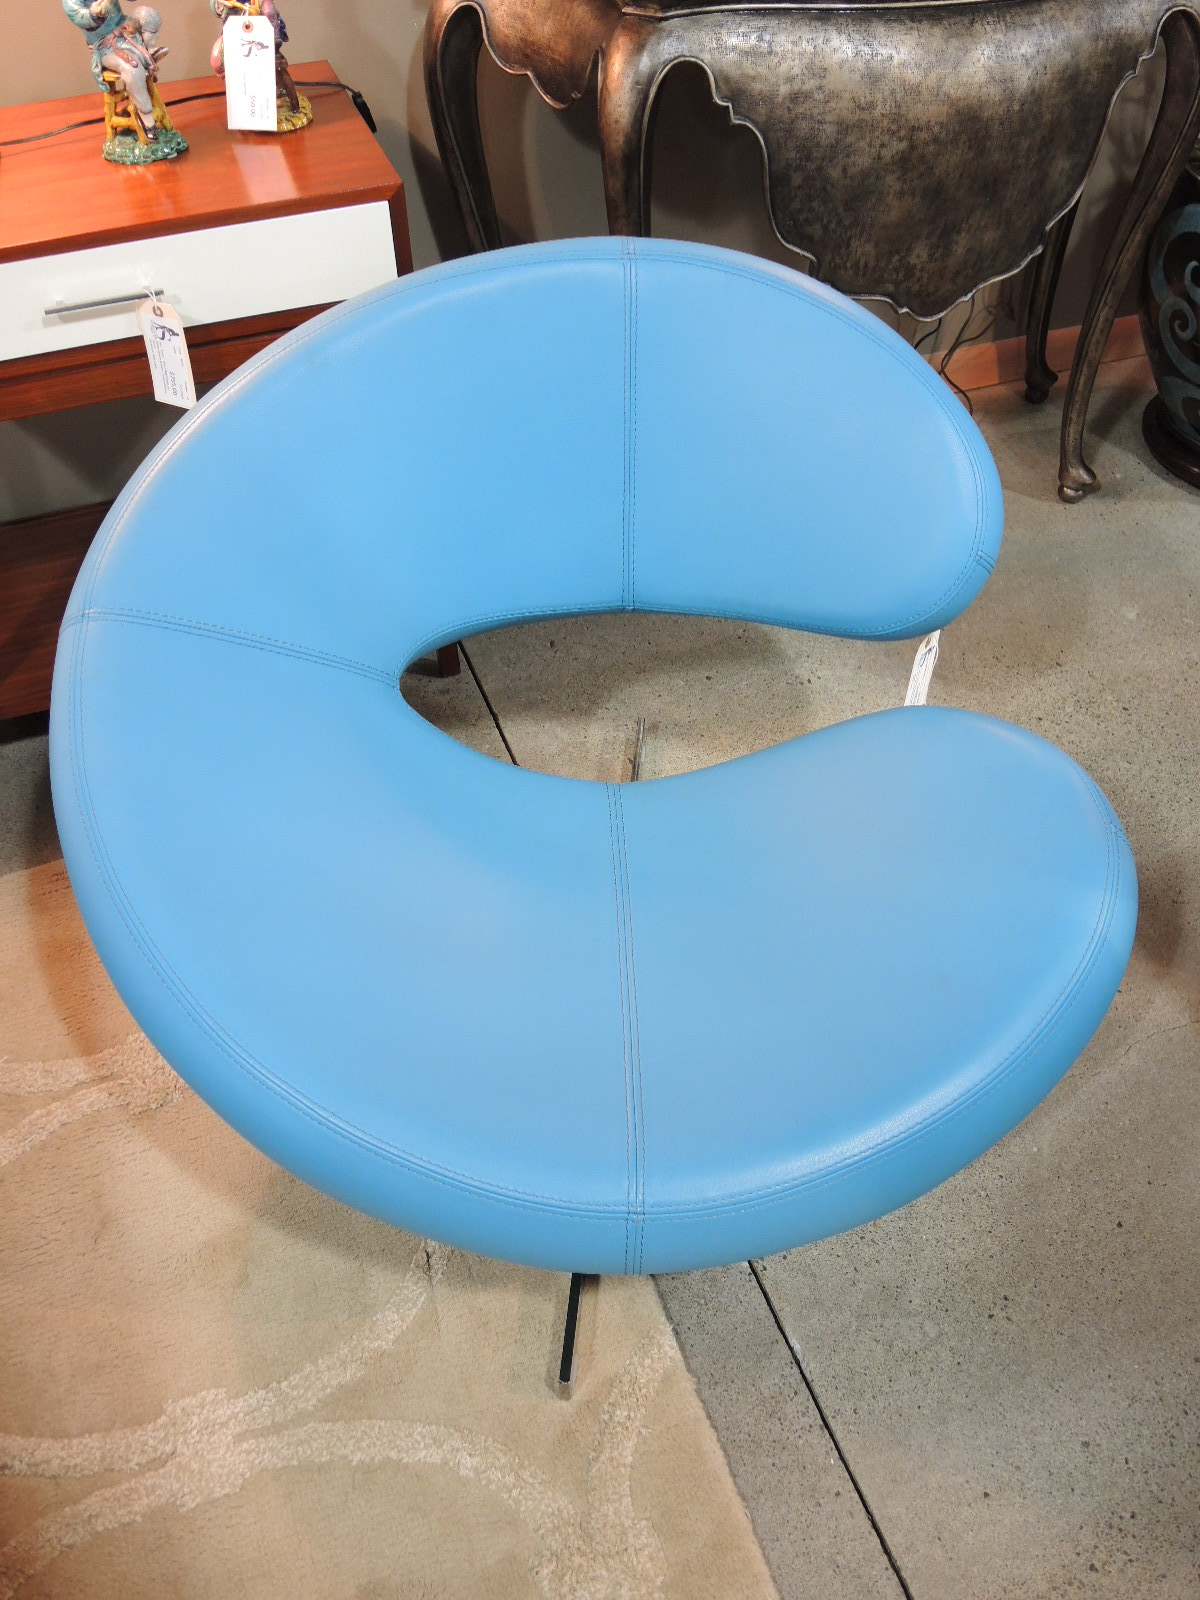 Robinu0027s Egg Blue Leather Roche Bobois U0027Centrou0027 Swivel Chair And Ottoman,  28u2033W X 31u2033D X 38u2033H, $1500u2013SOLD